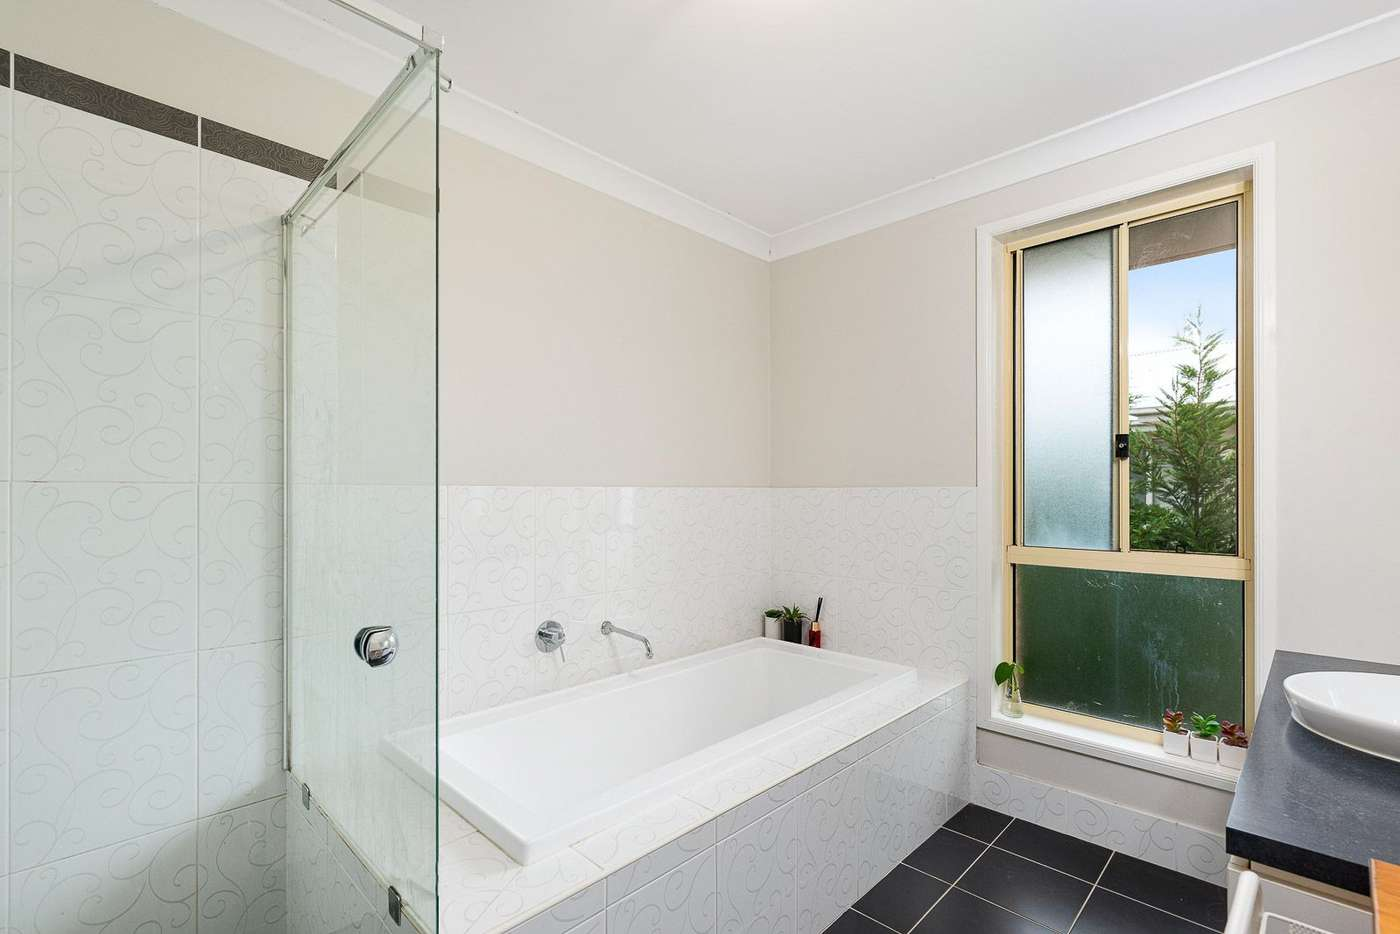 Sixth view of Homely house listing, 4 Darrabarra Way, Rouse Hill NSW 2155